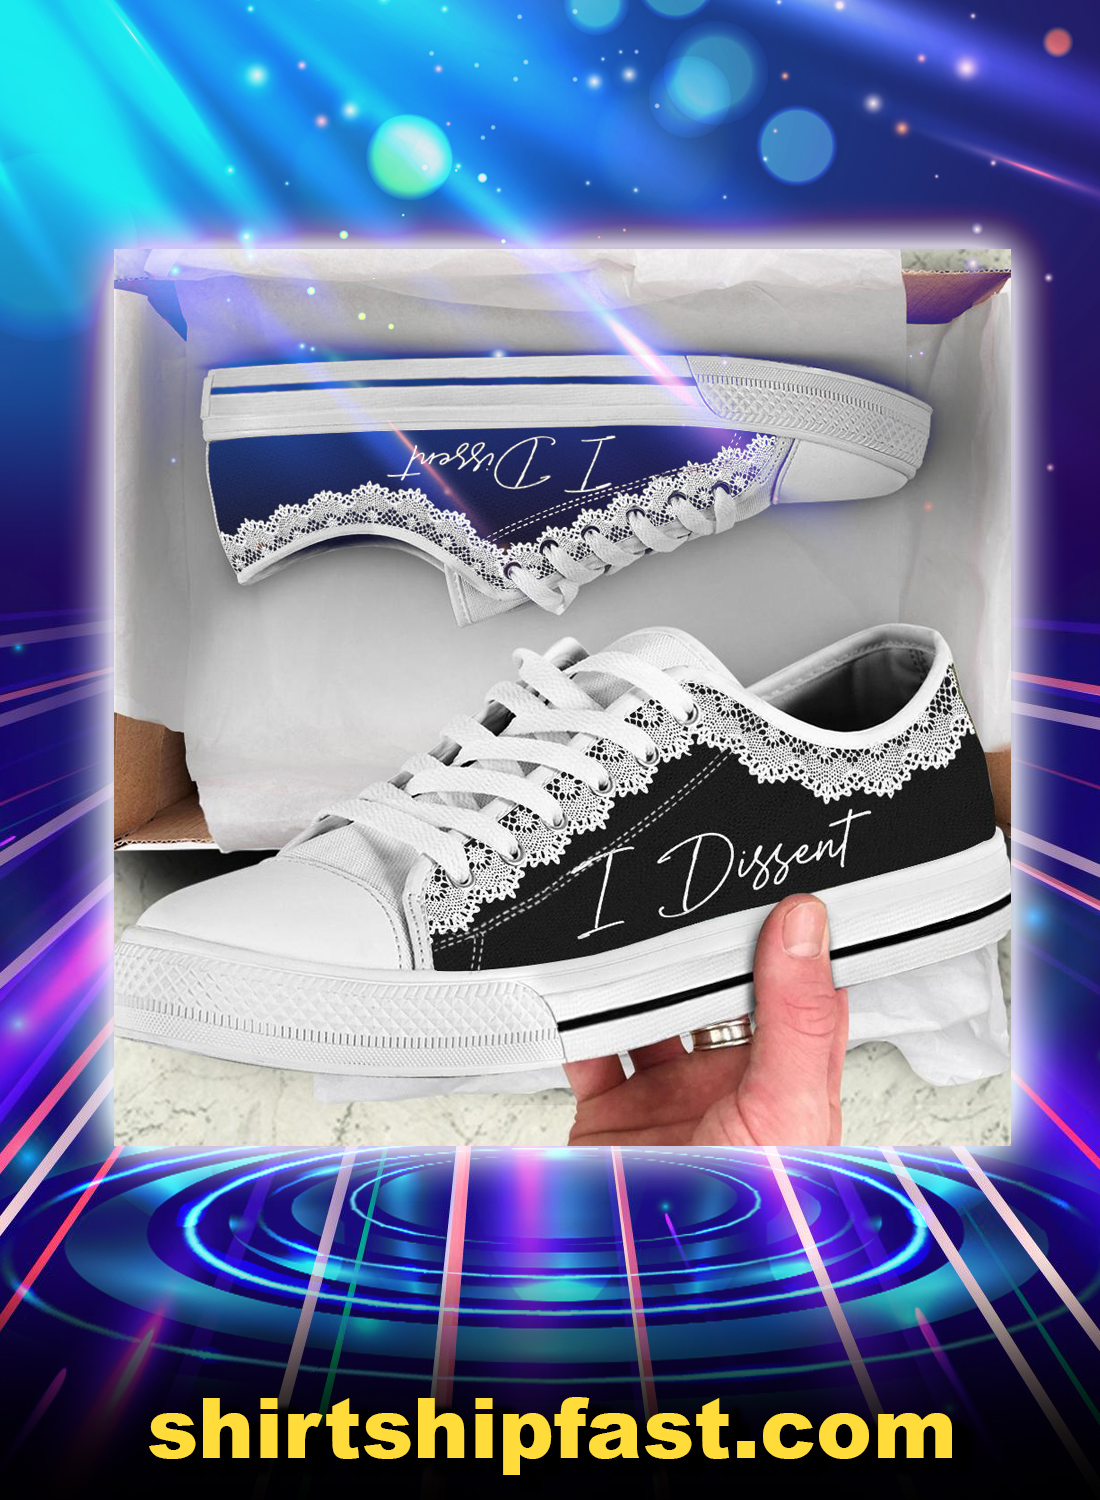 Rbg I dissent low top shoes - Picture 1